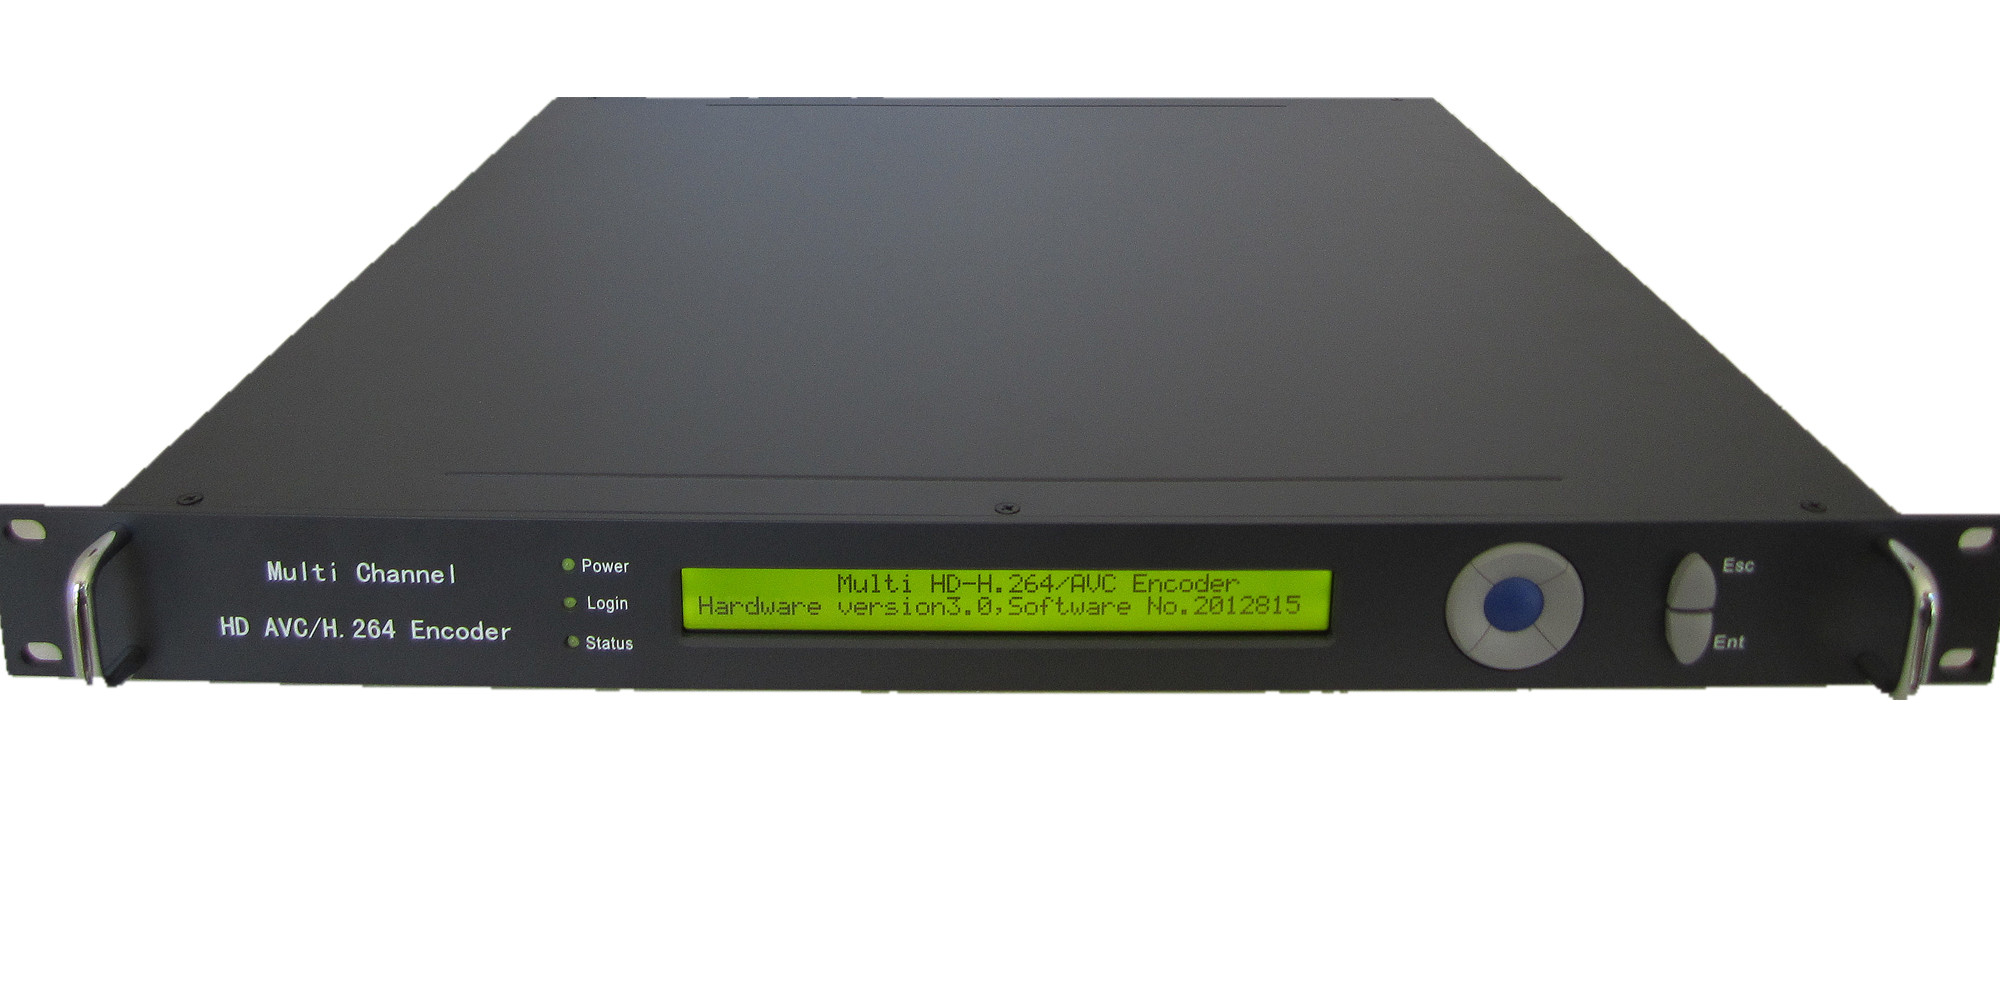 HP902D 4 in 1 Flash HD IP Encoder support HTTP/RTMP/RTP/RTSP